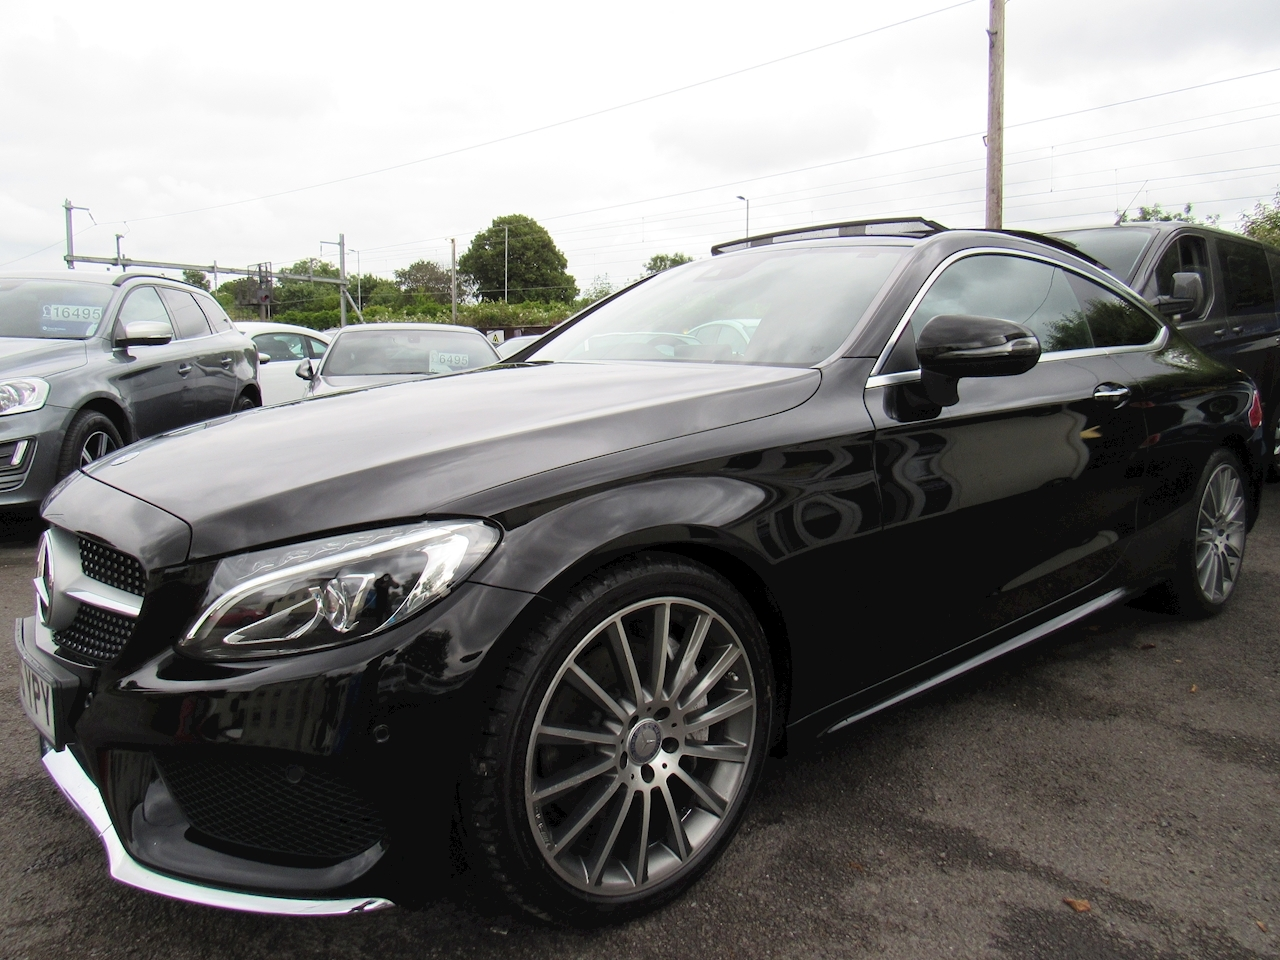 Mercedes-Benz C Class C 250 D Amg Line Premium Plus Coupe 2.1 Automatic Diesel